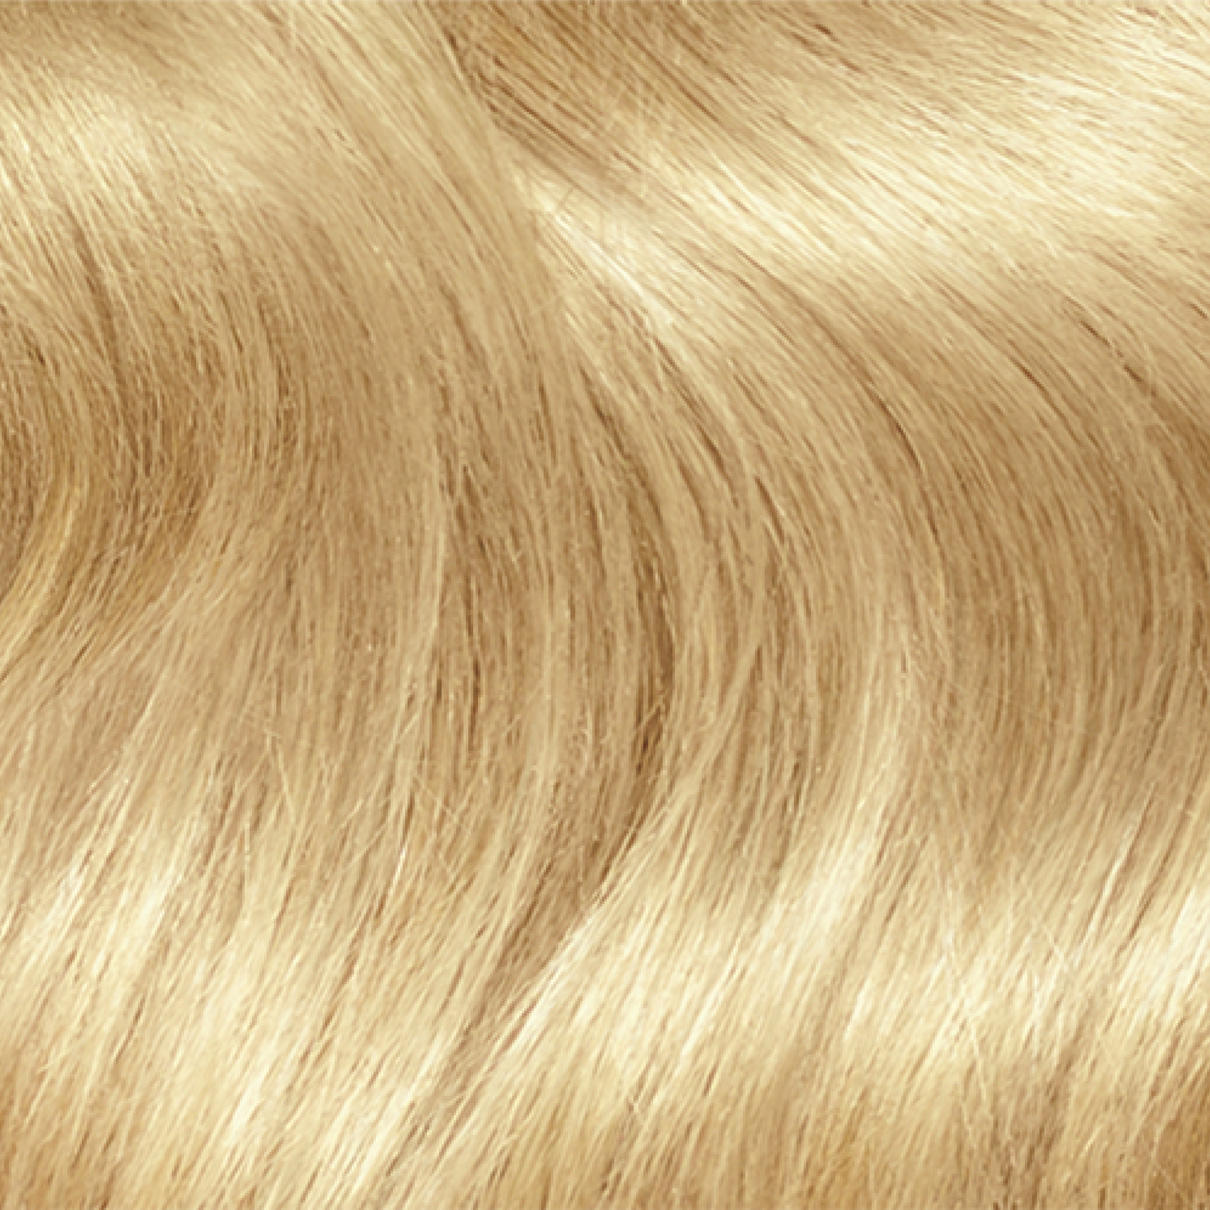 Permanent hair color clairol nice n easy 10 extra light blonde geenschuldenfo Image collections